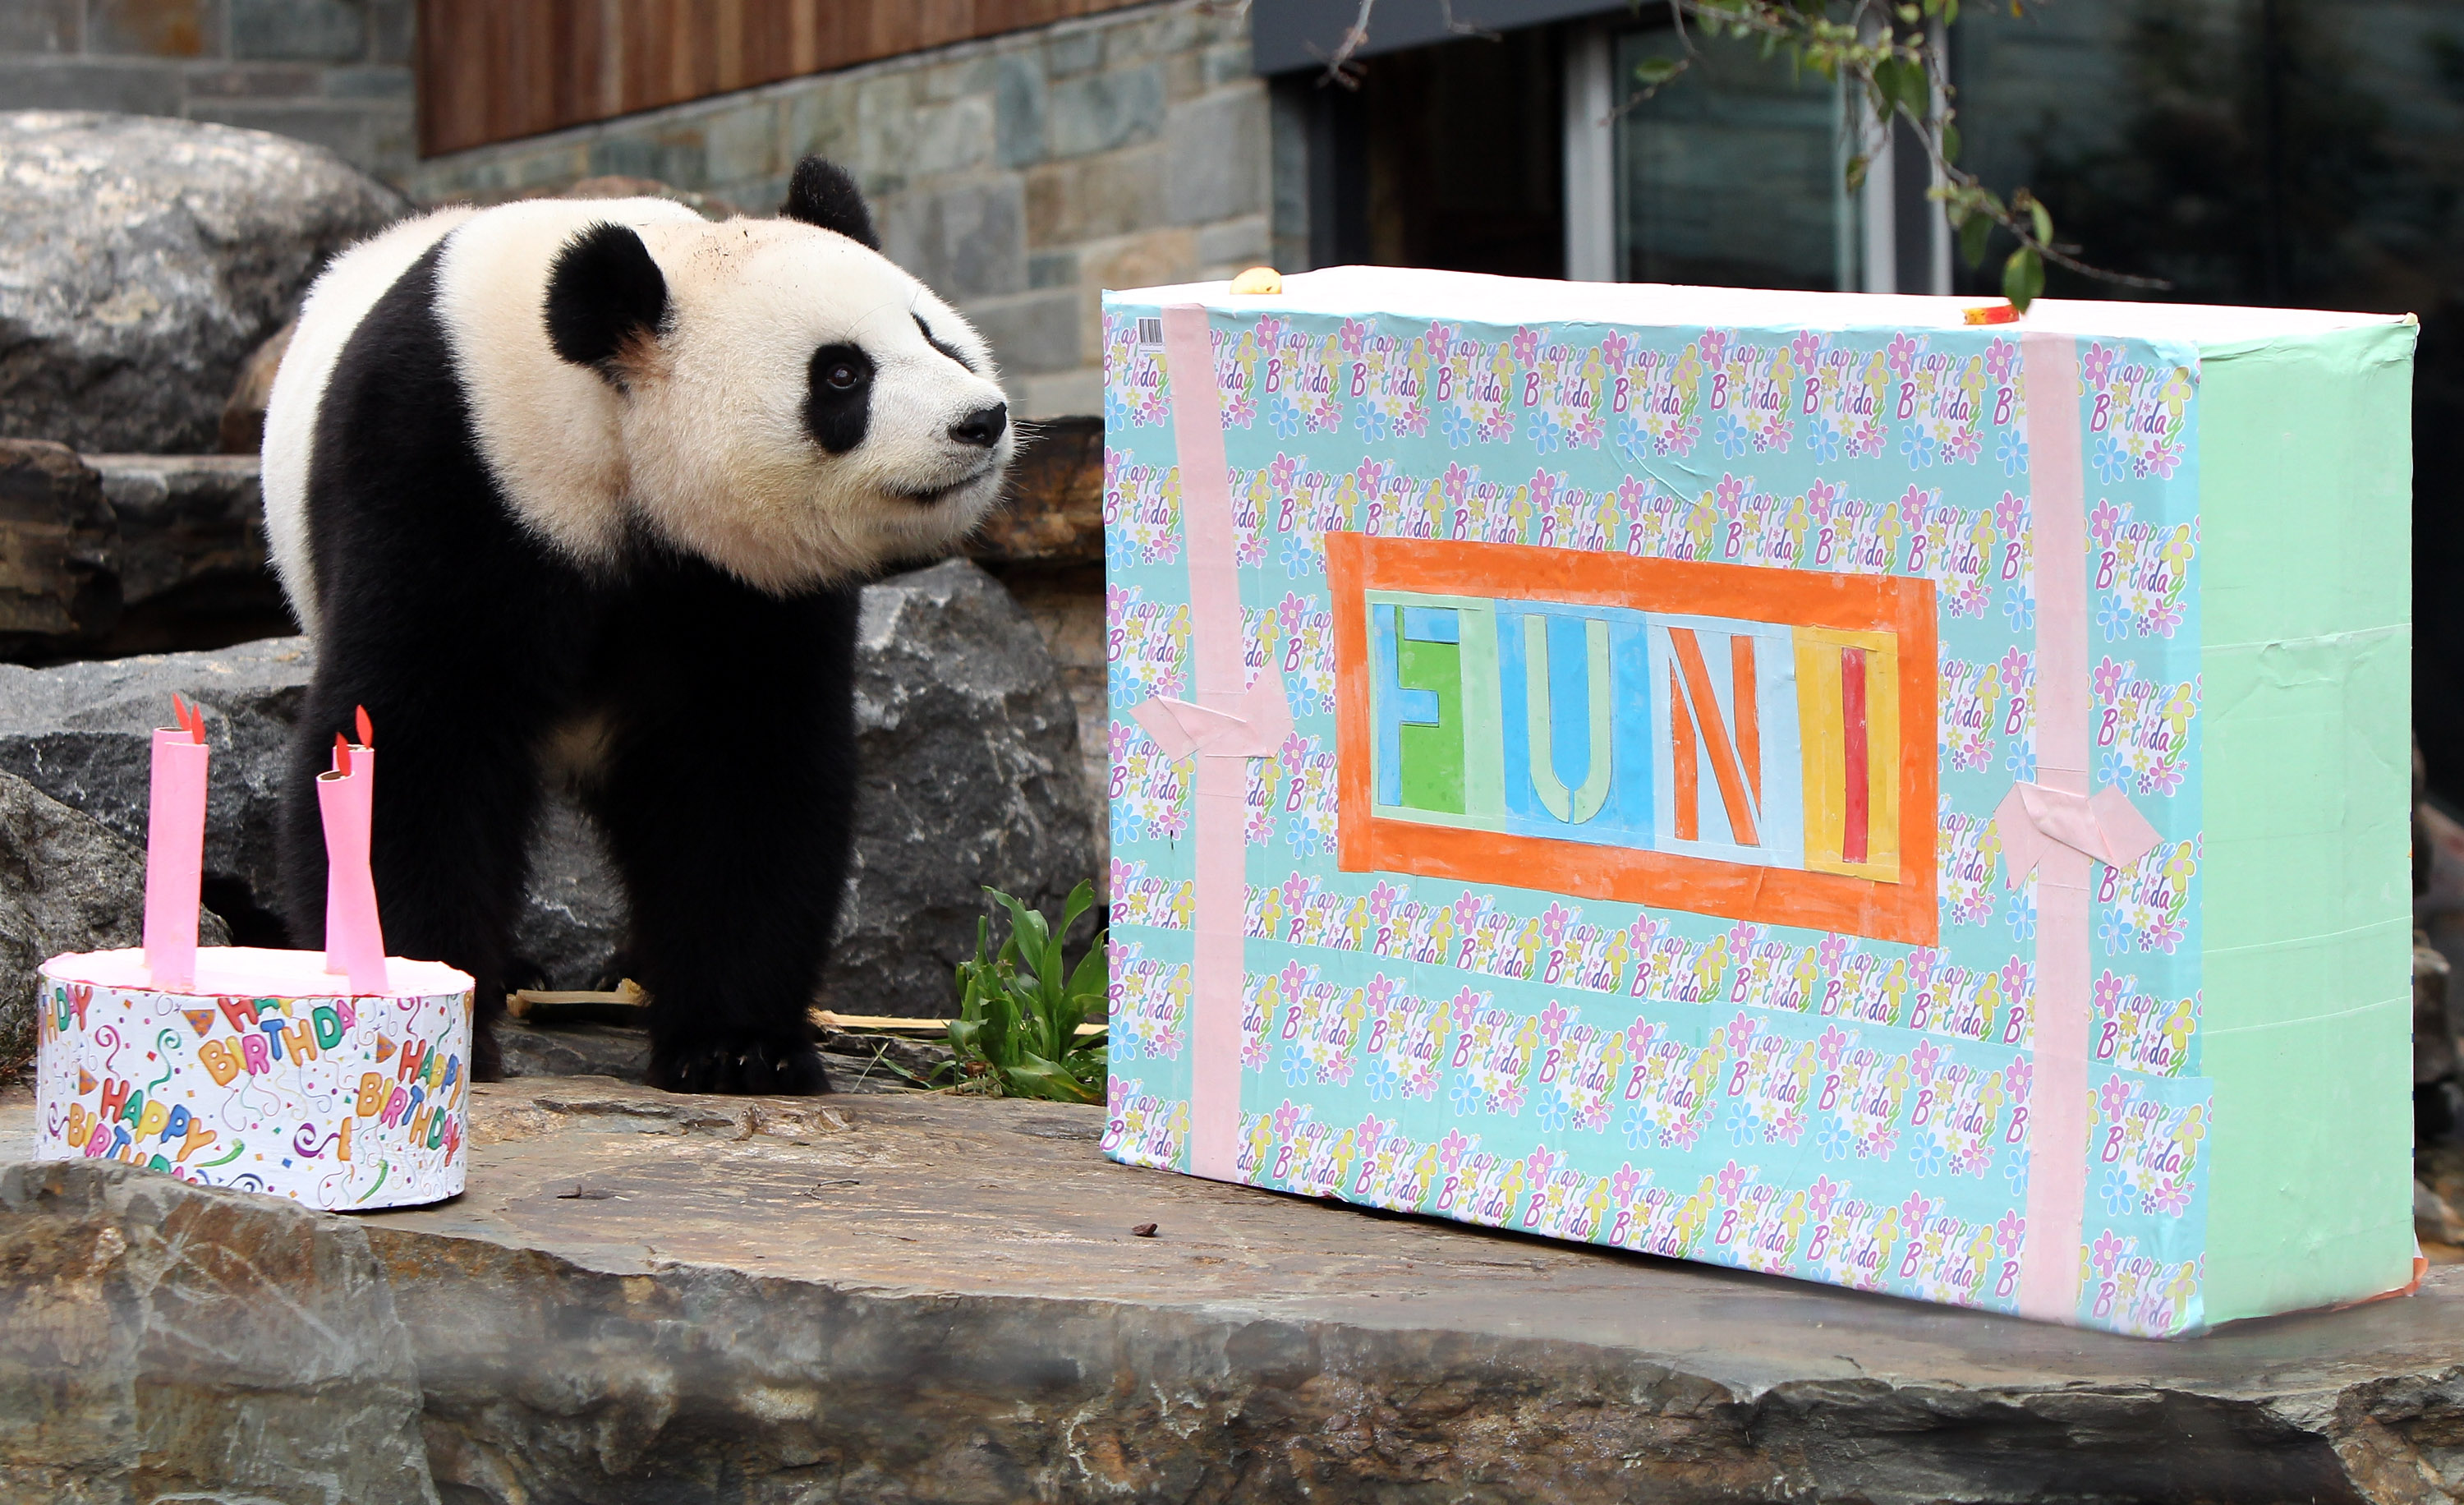 Funi the Panda enjoys inspecting her present and birthday cake